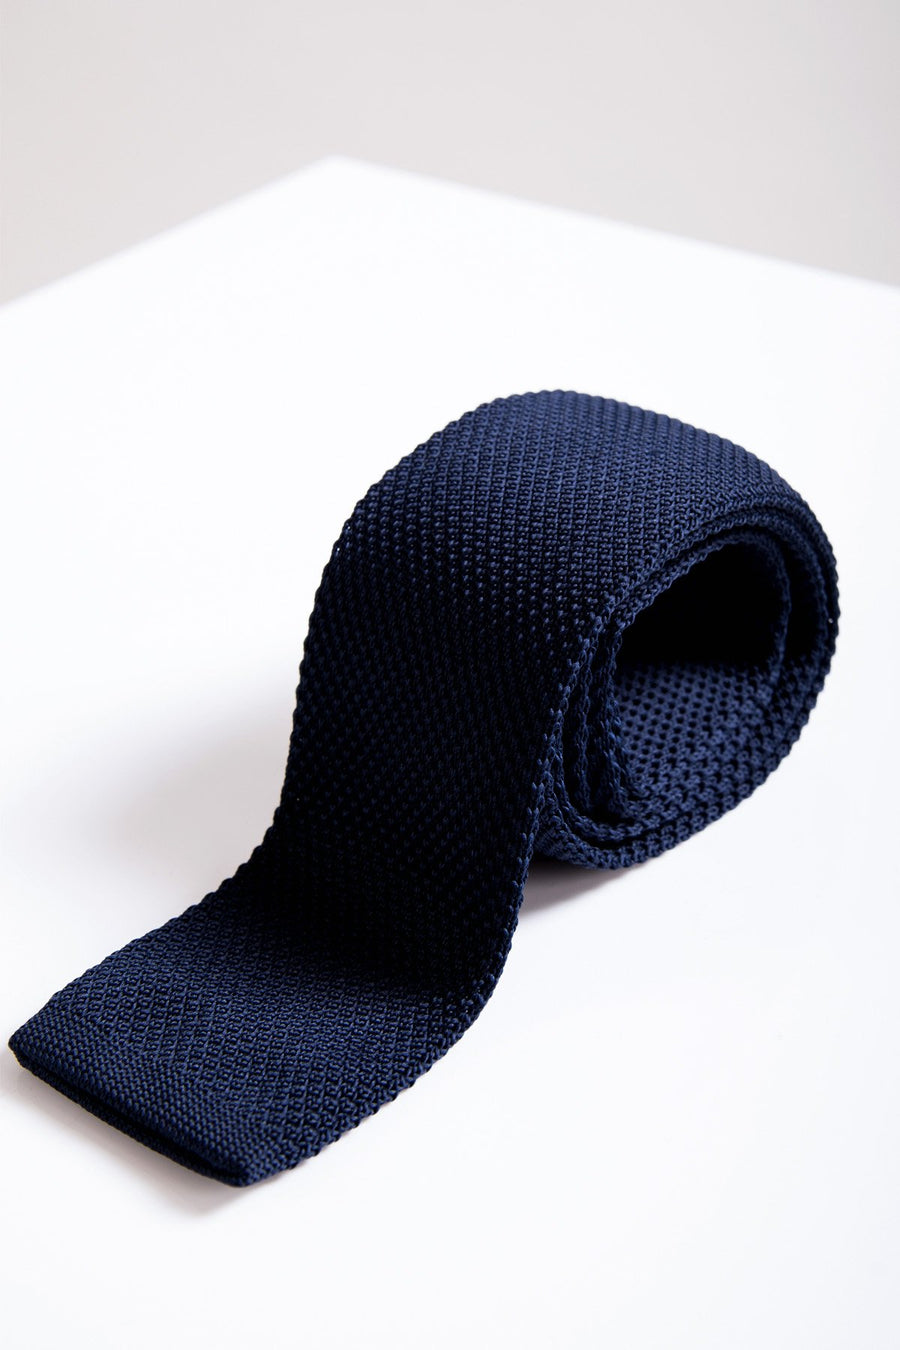 KT Navy Knitted Tie - Wedding Suit Direct